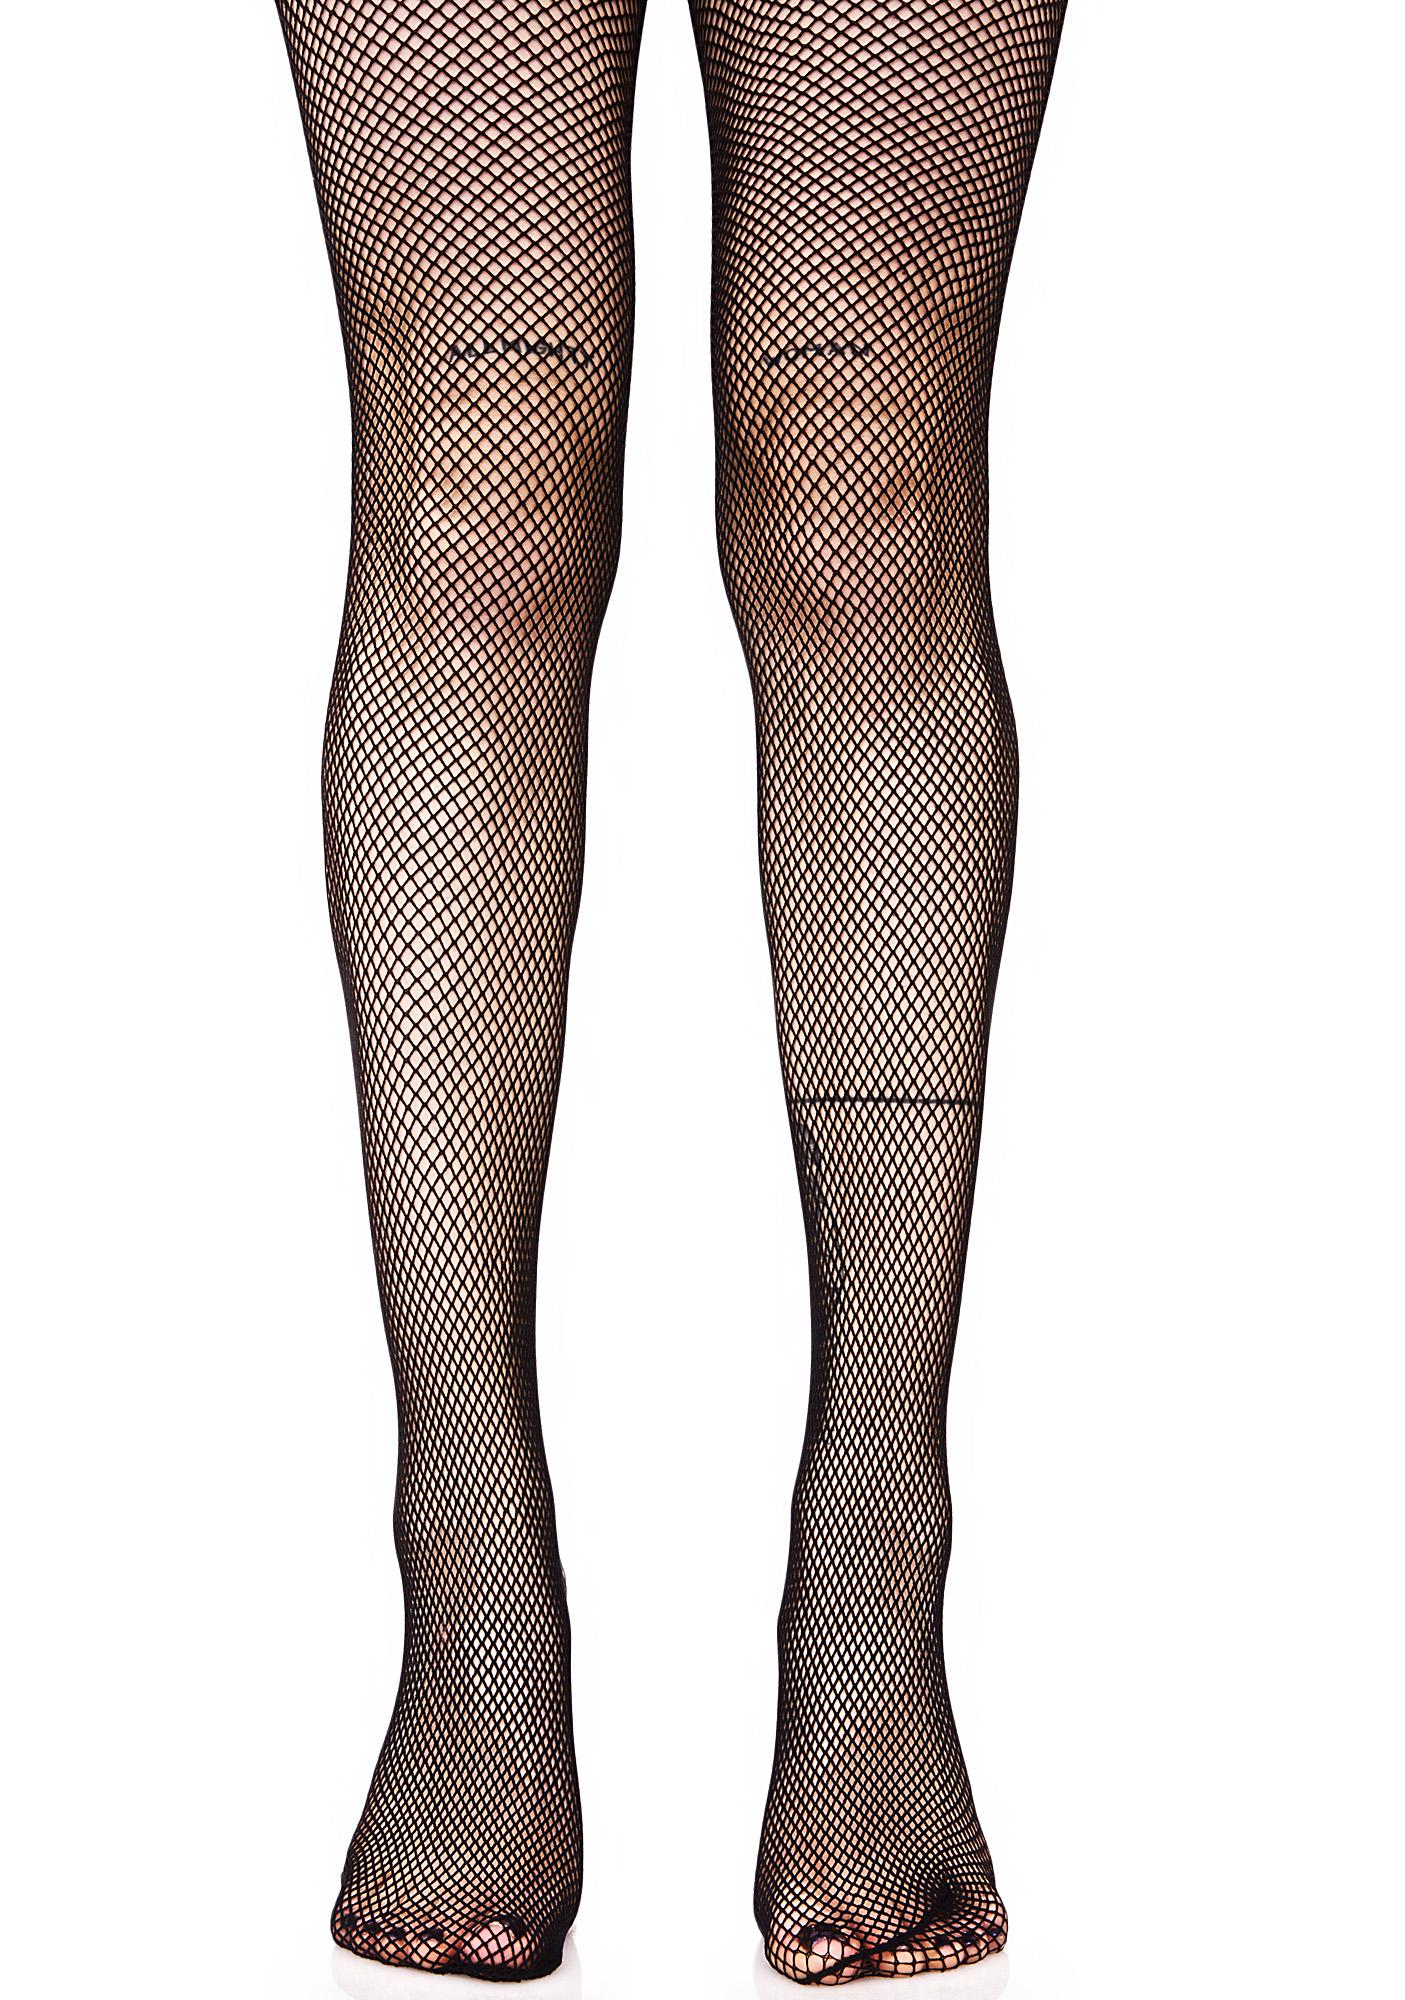 Find great deals on eBay for black fishnet stockings. Shop with confidence.